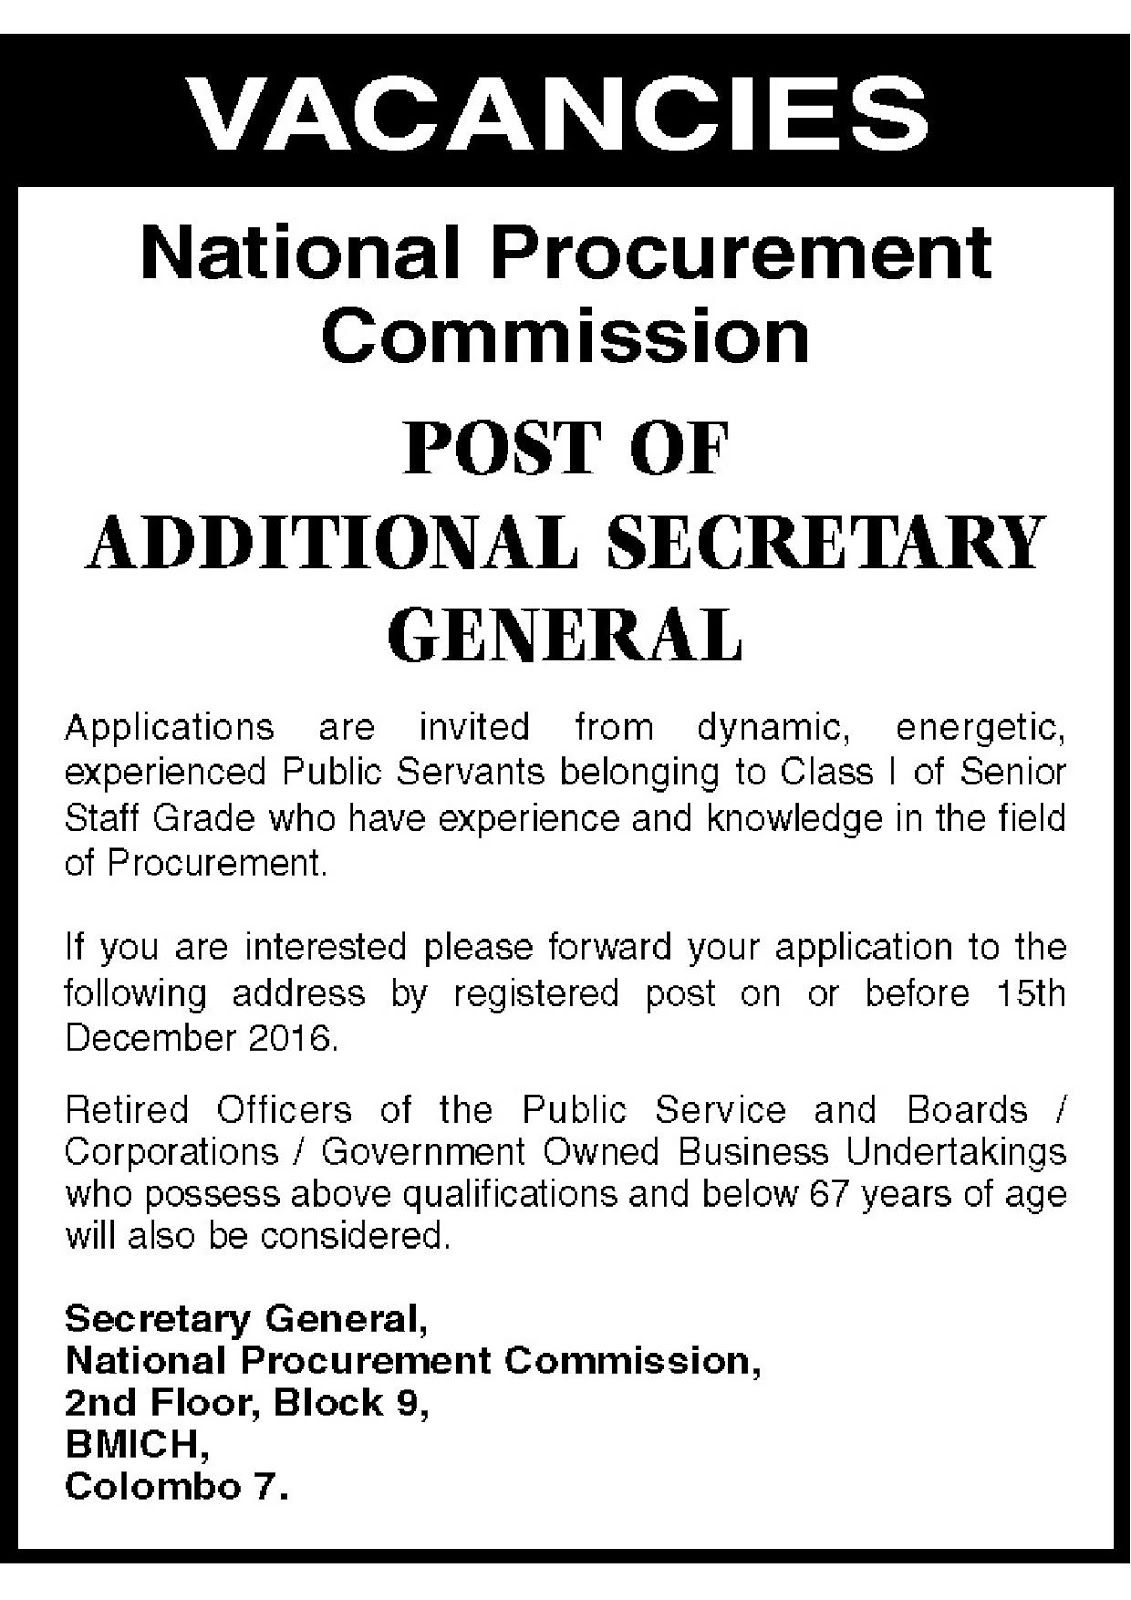 Sri Lankan Government Job Vacancies At National